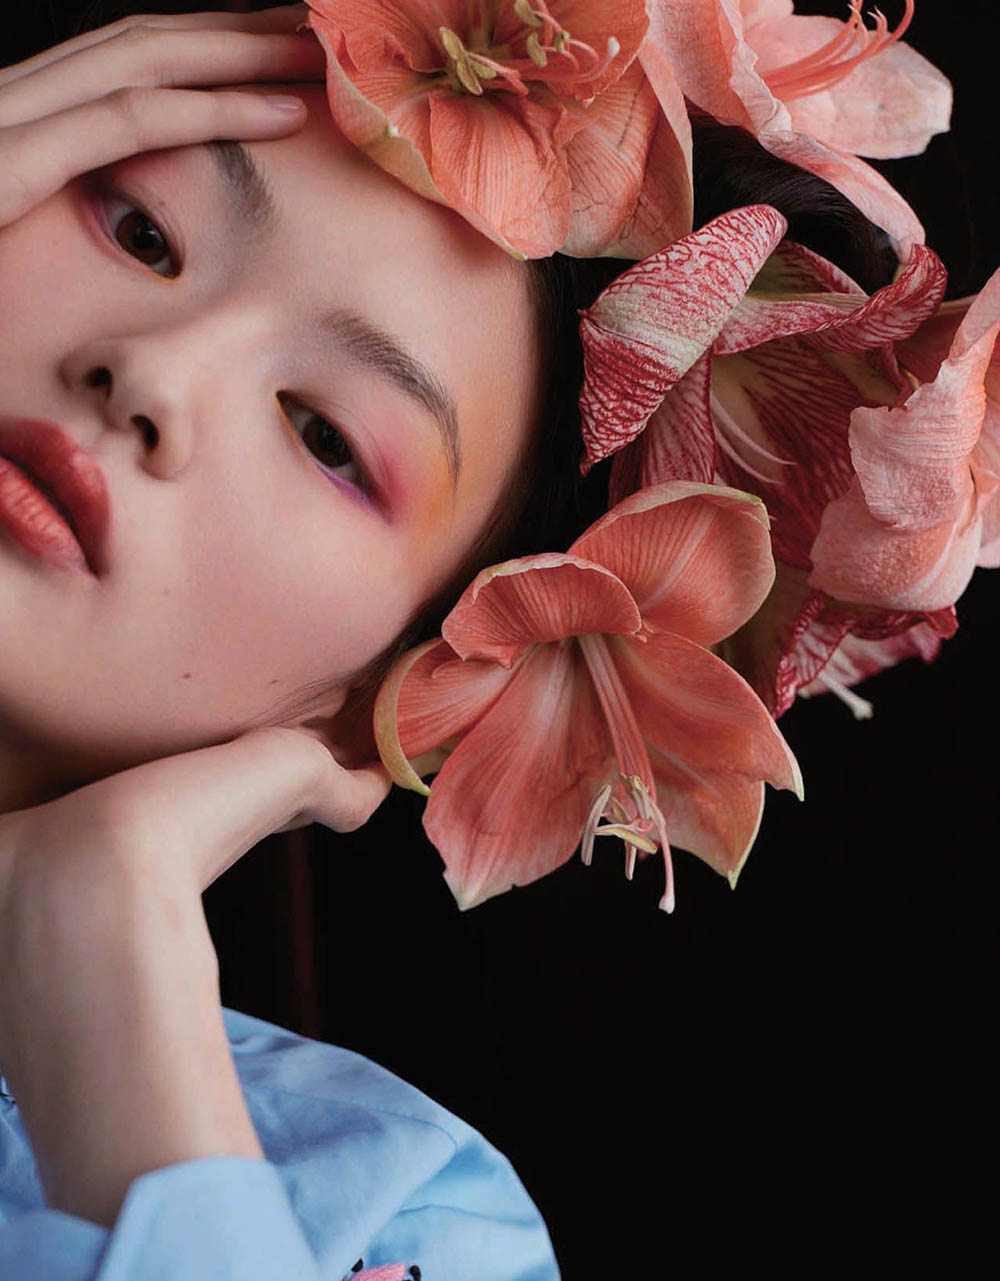 He Cong by Yuan Gui Mei for Vogue China January 2020He Cong by Yuan Gui Mei for Vogue China January 2020